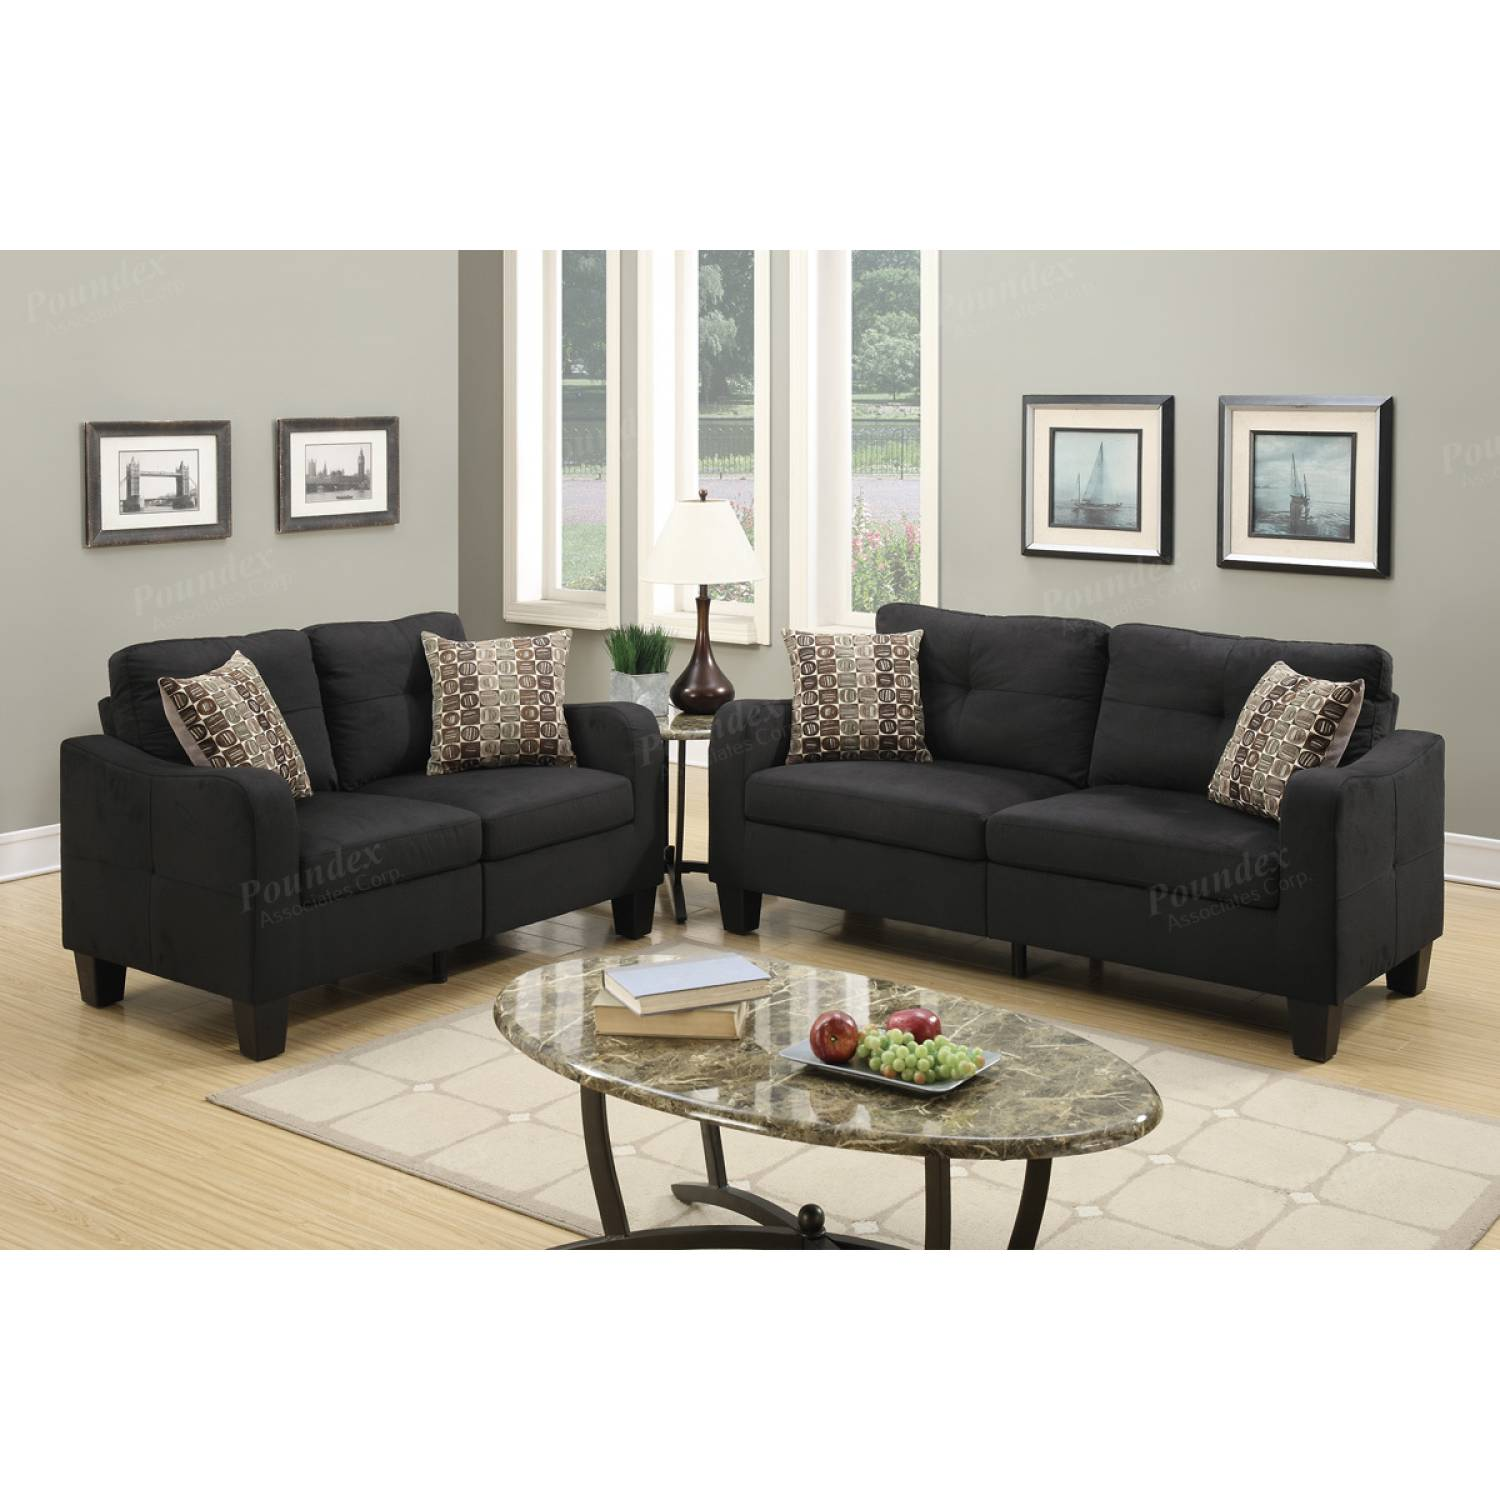 Pcs Sofa Set F6922